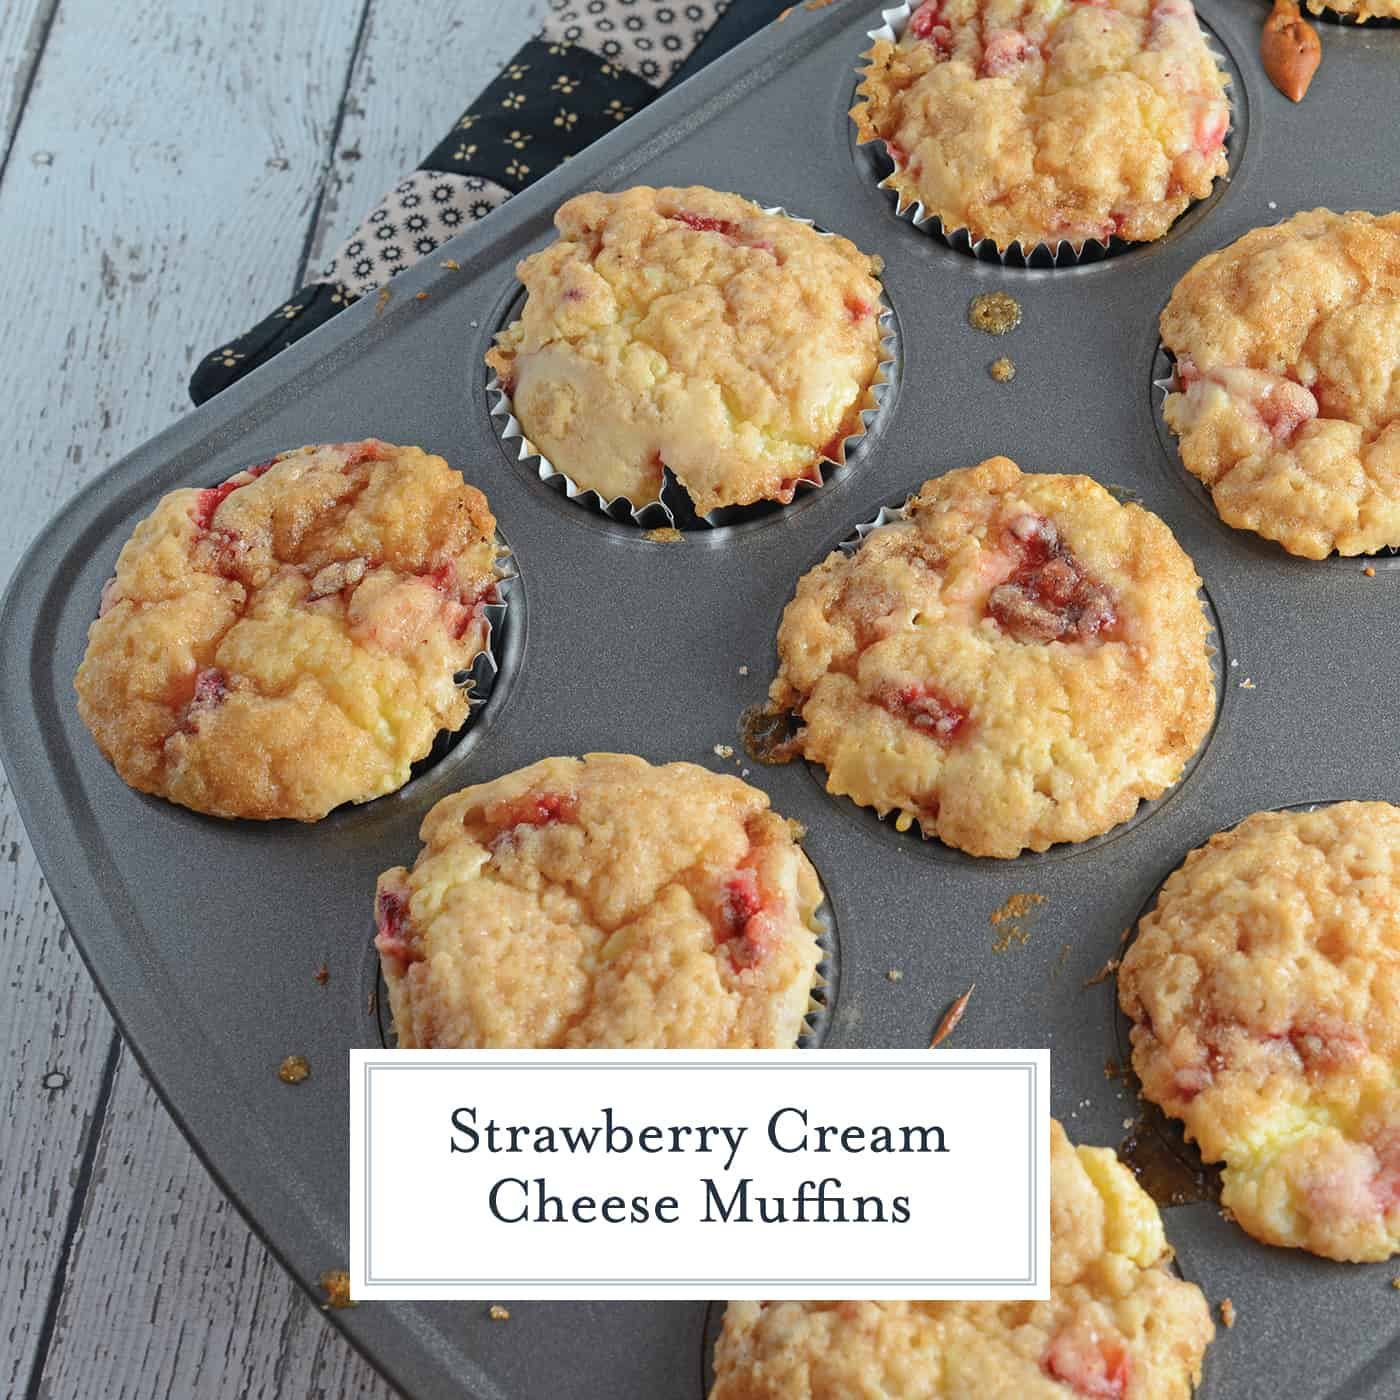 Strawberry Cream Cheese Muffins are soft muffins using fresh strawberries, rich cream cheese and a brown sugar streusel topping. #homemademuffins #strawberrycreamcheesemuffins #strawberrymuffins www.savoryexperiments.com